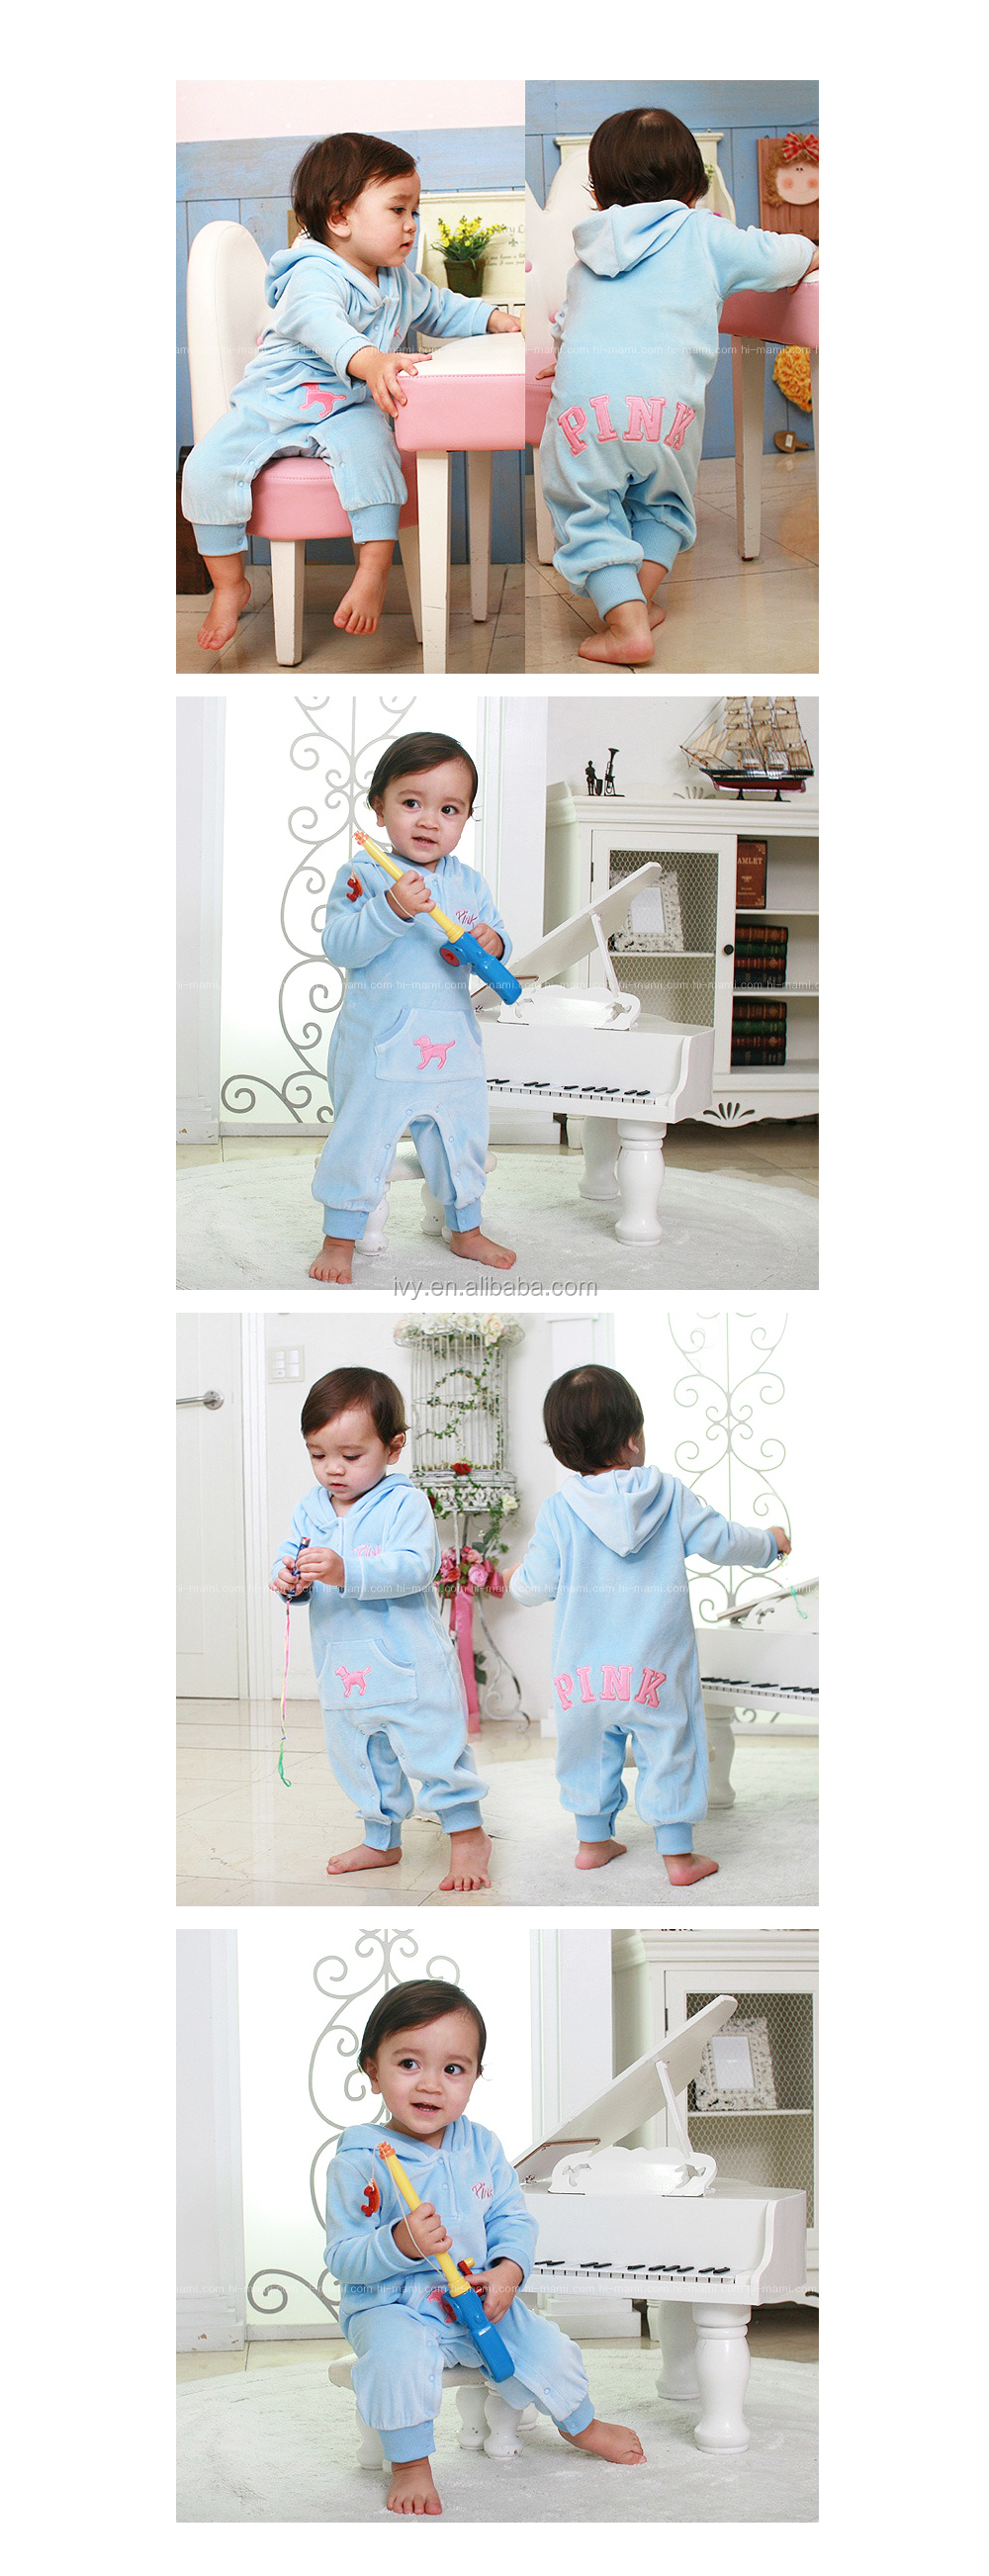 Velvet Kids Longsleeve Rompers Baby Outerwear Wholesale Clothing Drop Shipping